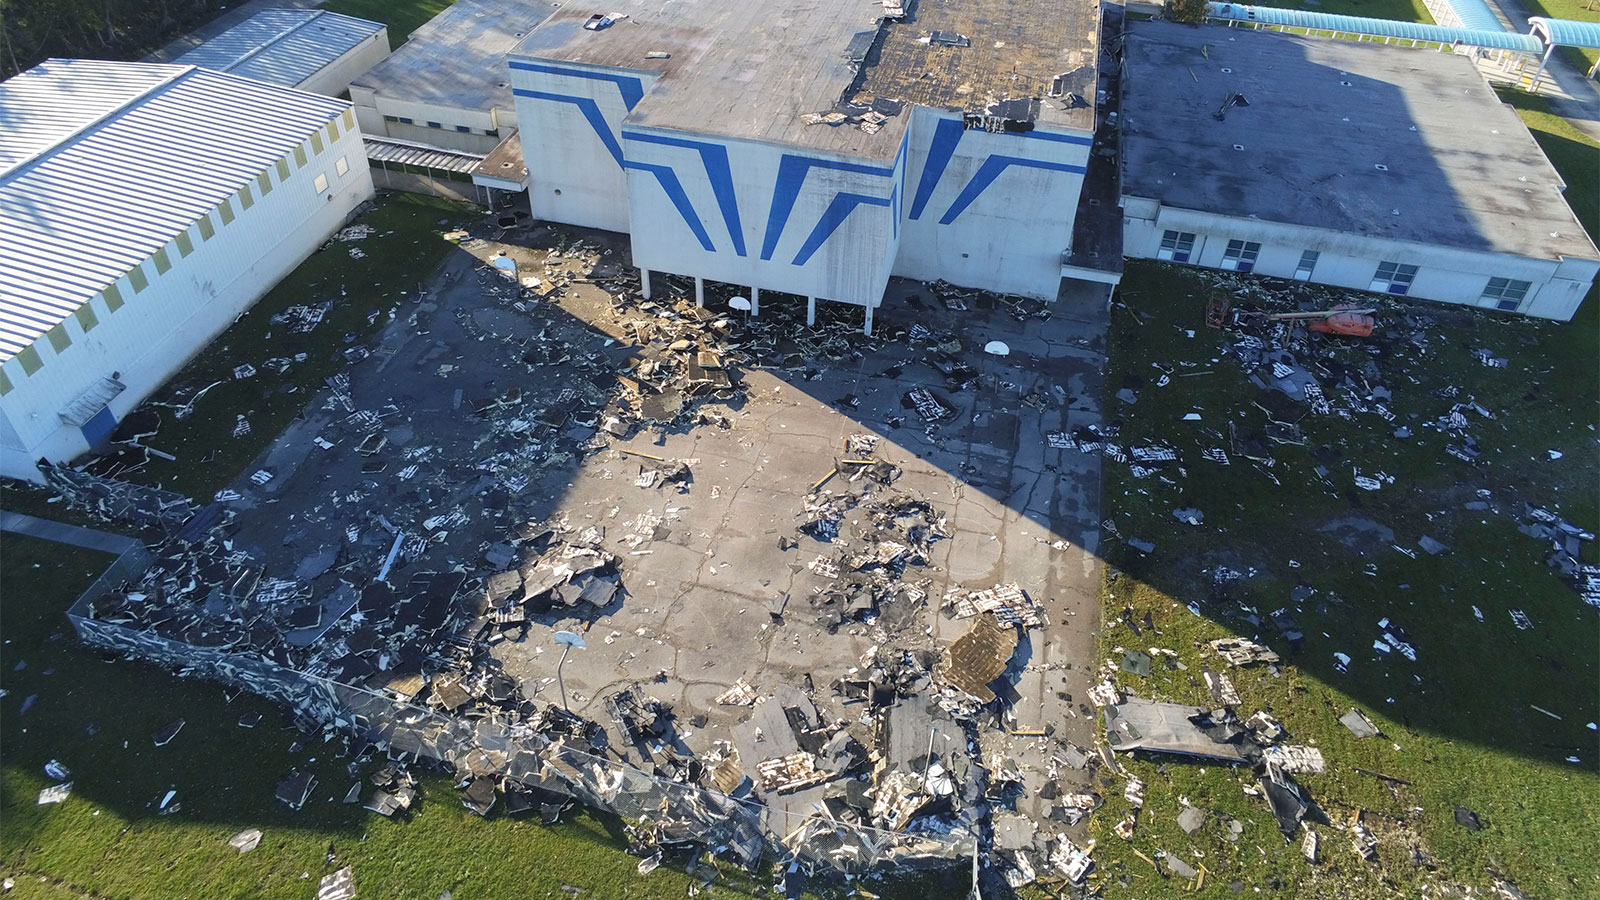 Drone photo of damage to St Bernard Middle School after Hurricane Zeta on October 29, 2020 in St Bernard, Louisiana.